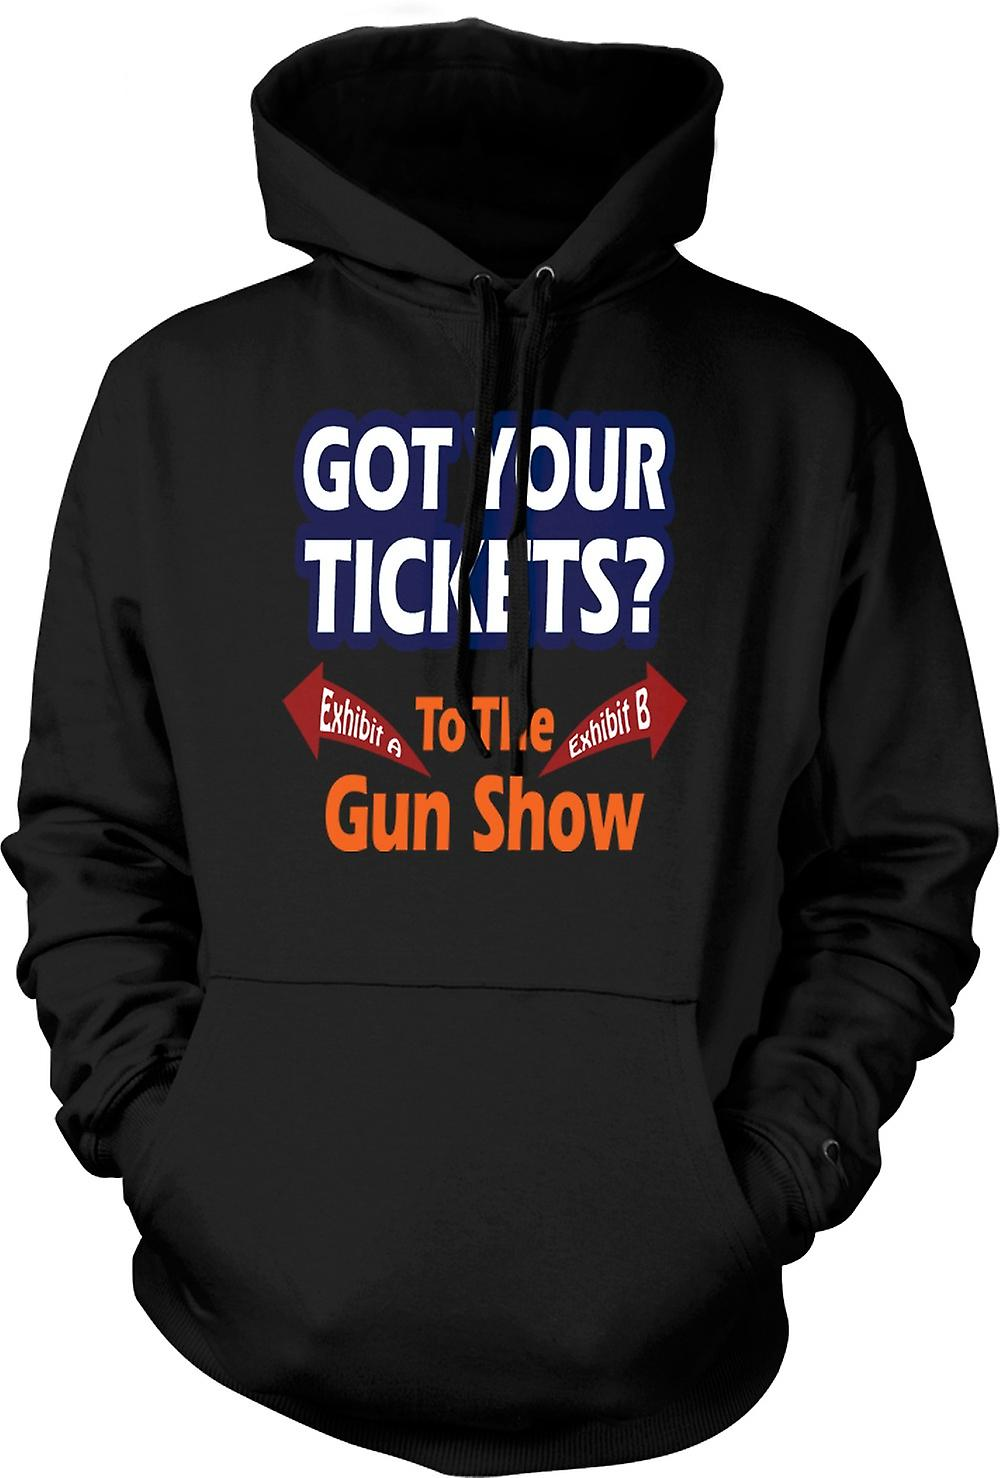 Mens Hoodie - Tickets For Gun Show - Funny